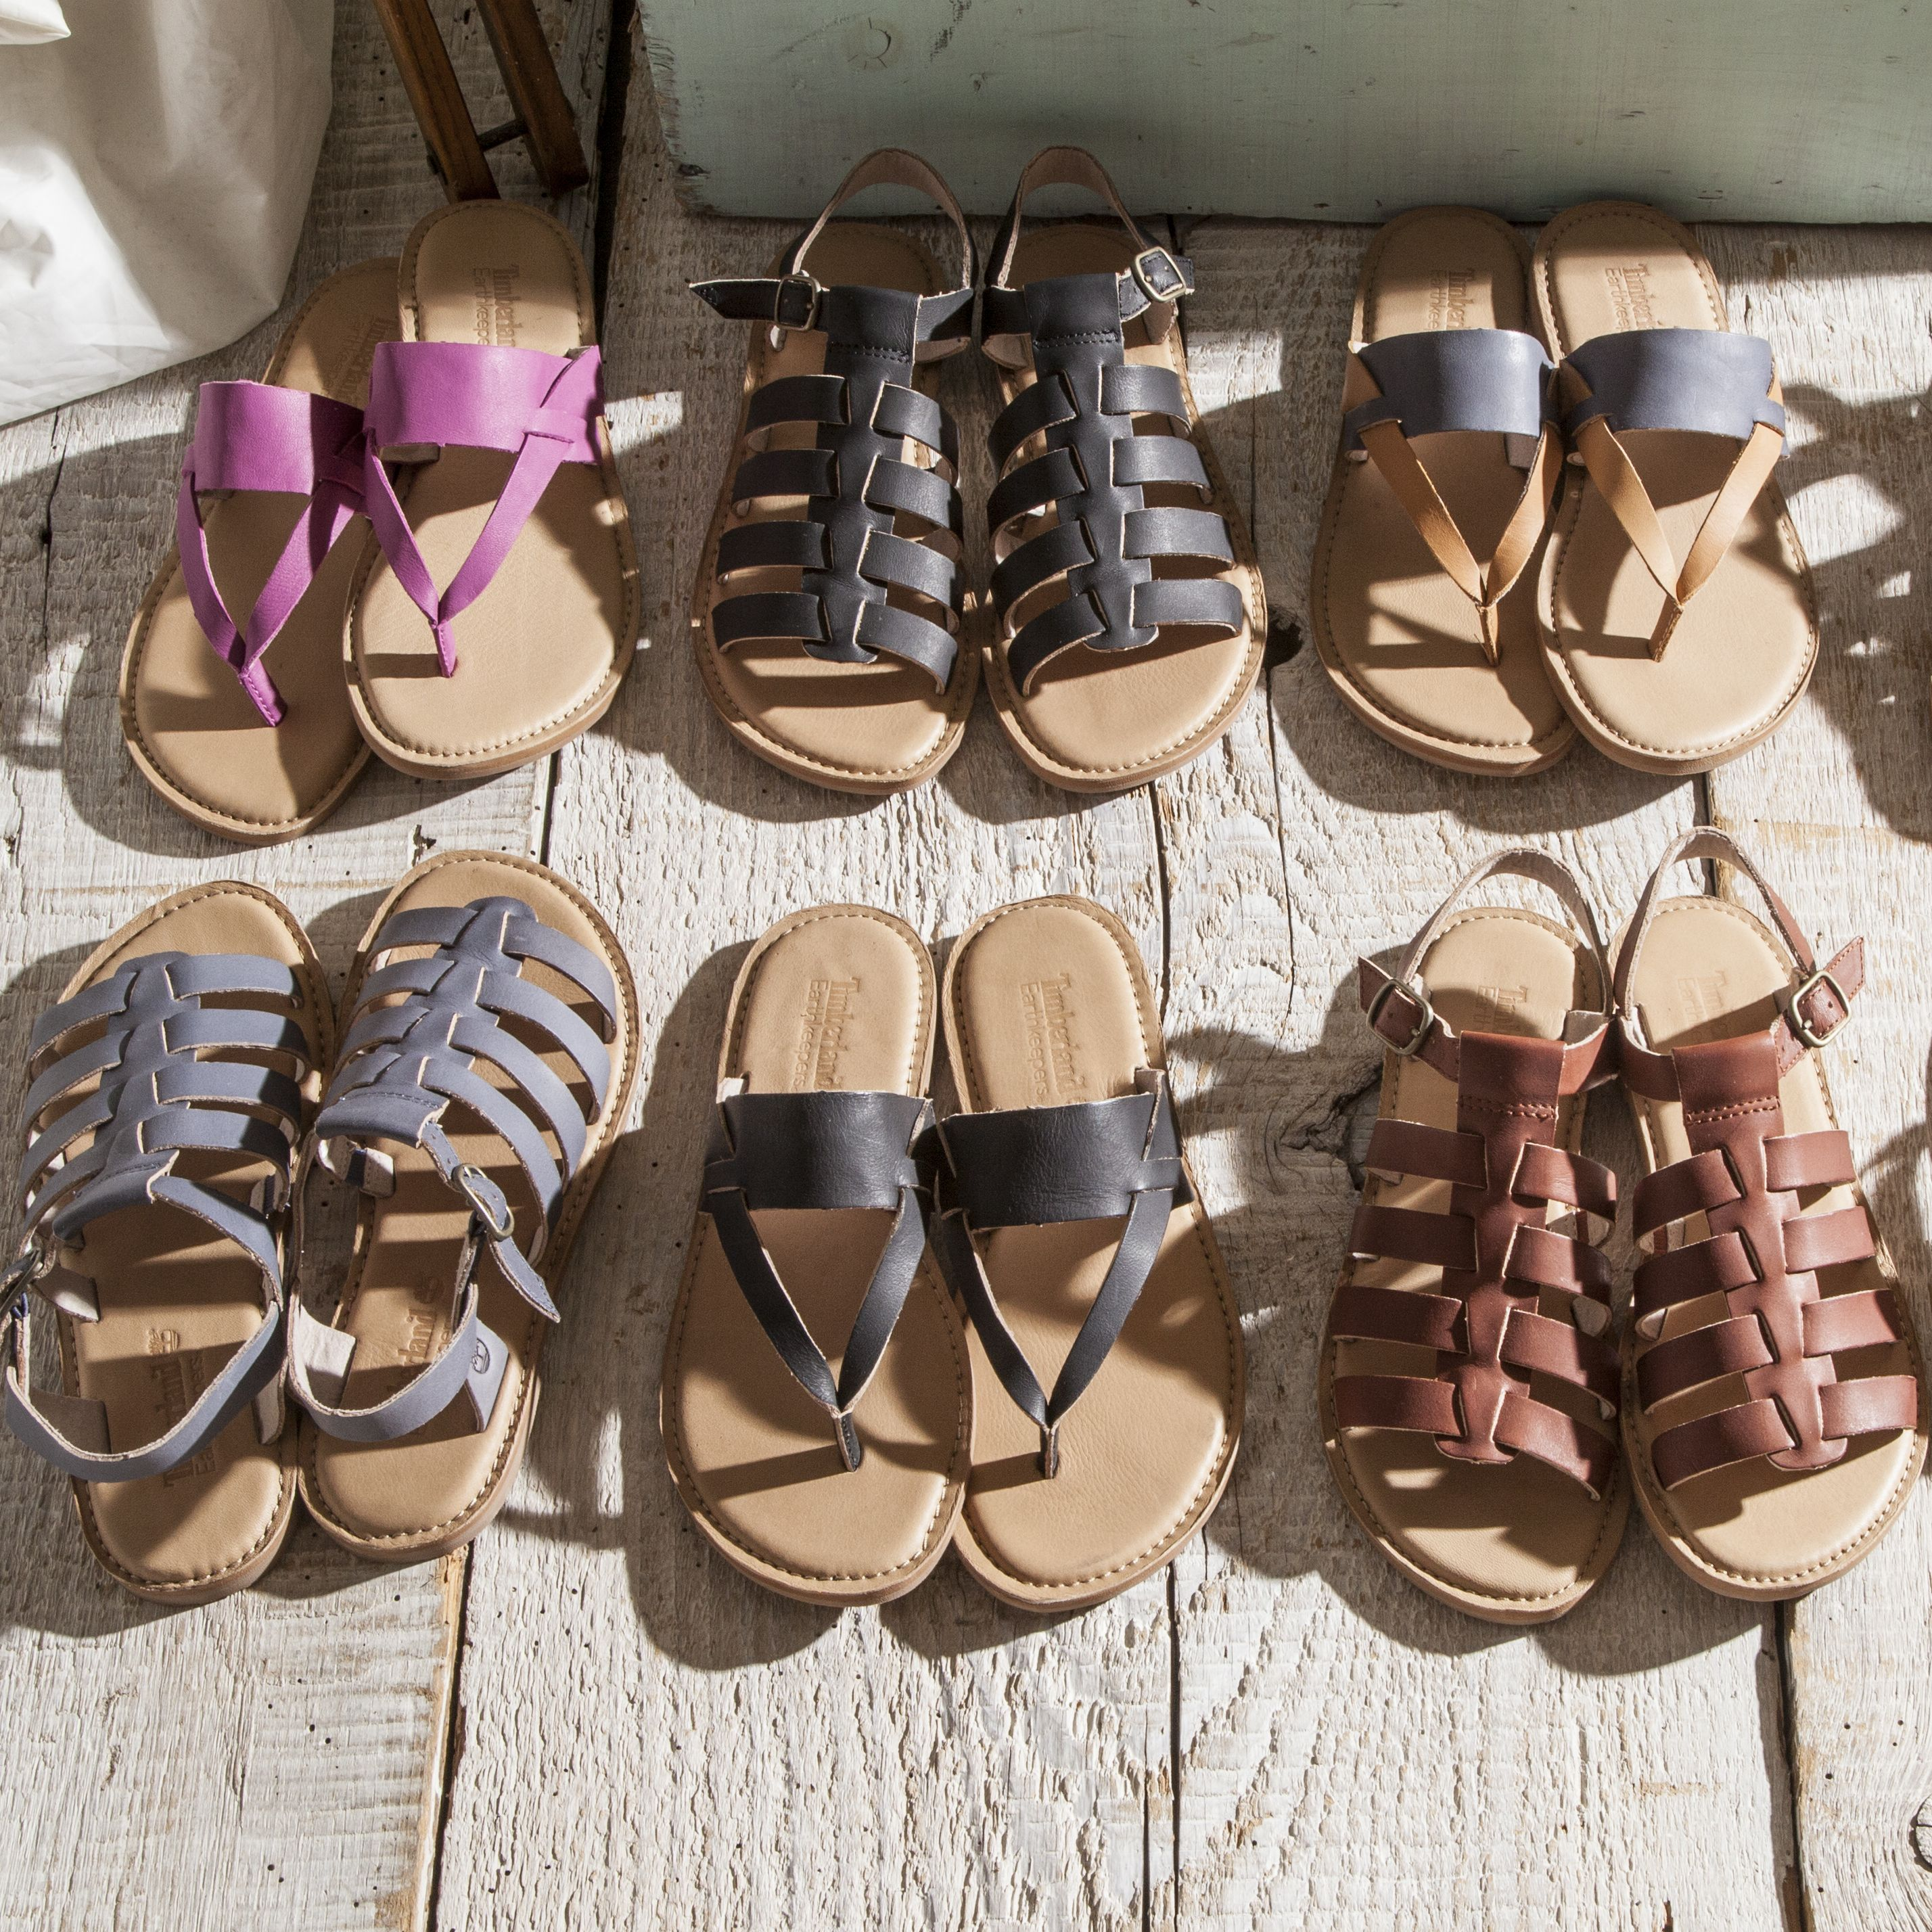 Sandals | Leather sandals women, Most comfortable sandals